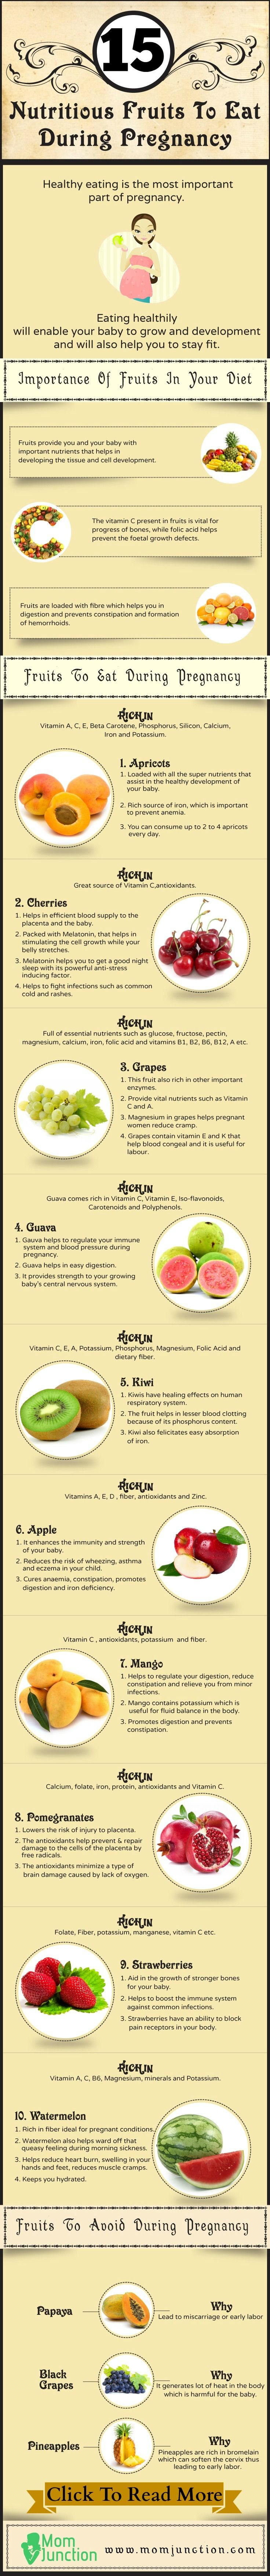 15 Nutritious Fruits To Eat During Pregnancy: Here are the different kinds of fruits you can eat during your pregnancy. These are all very healthy for your baby's development and will provide you with ample nutrition and energy.